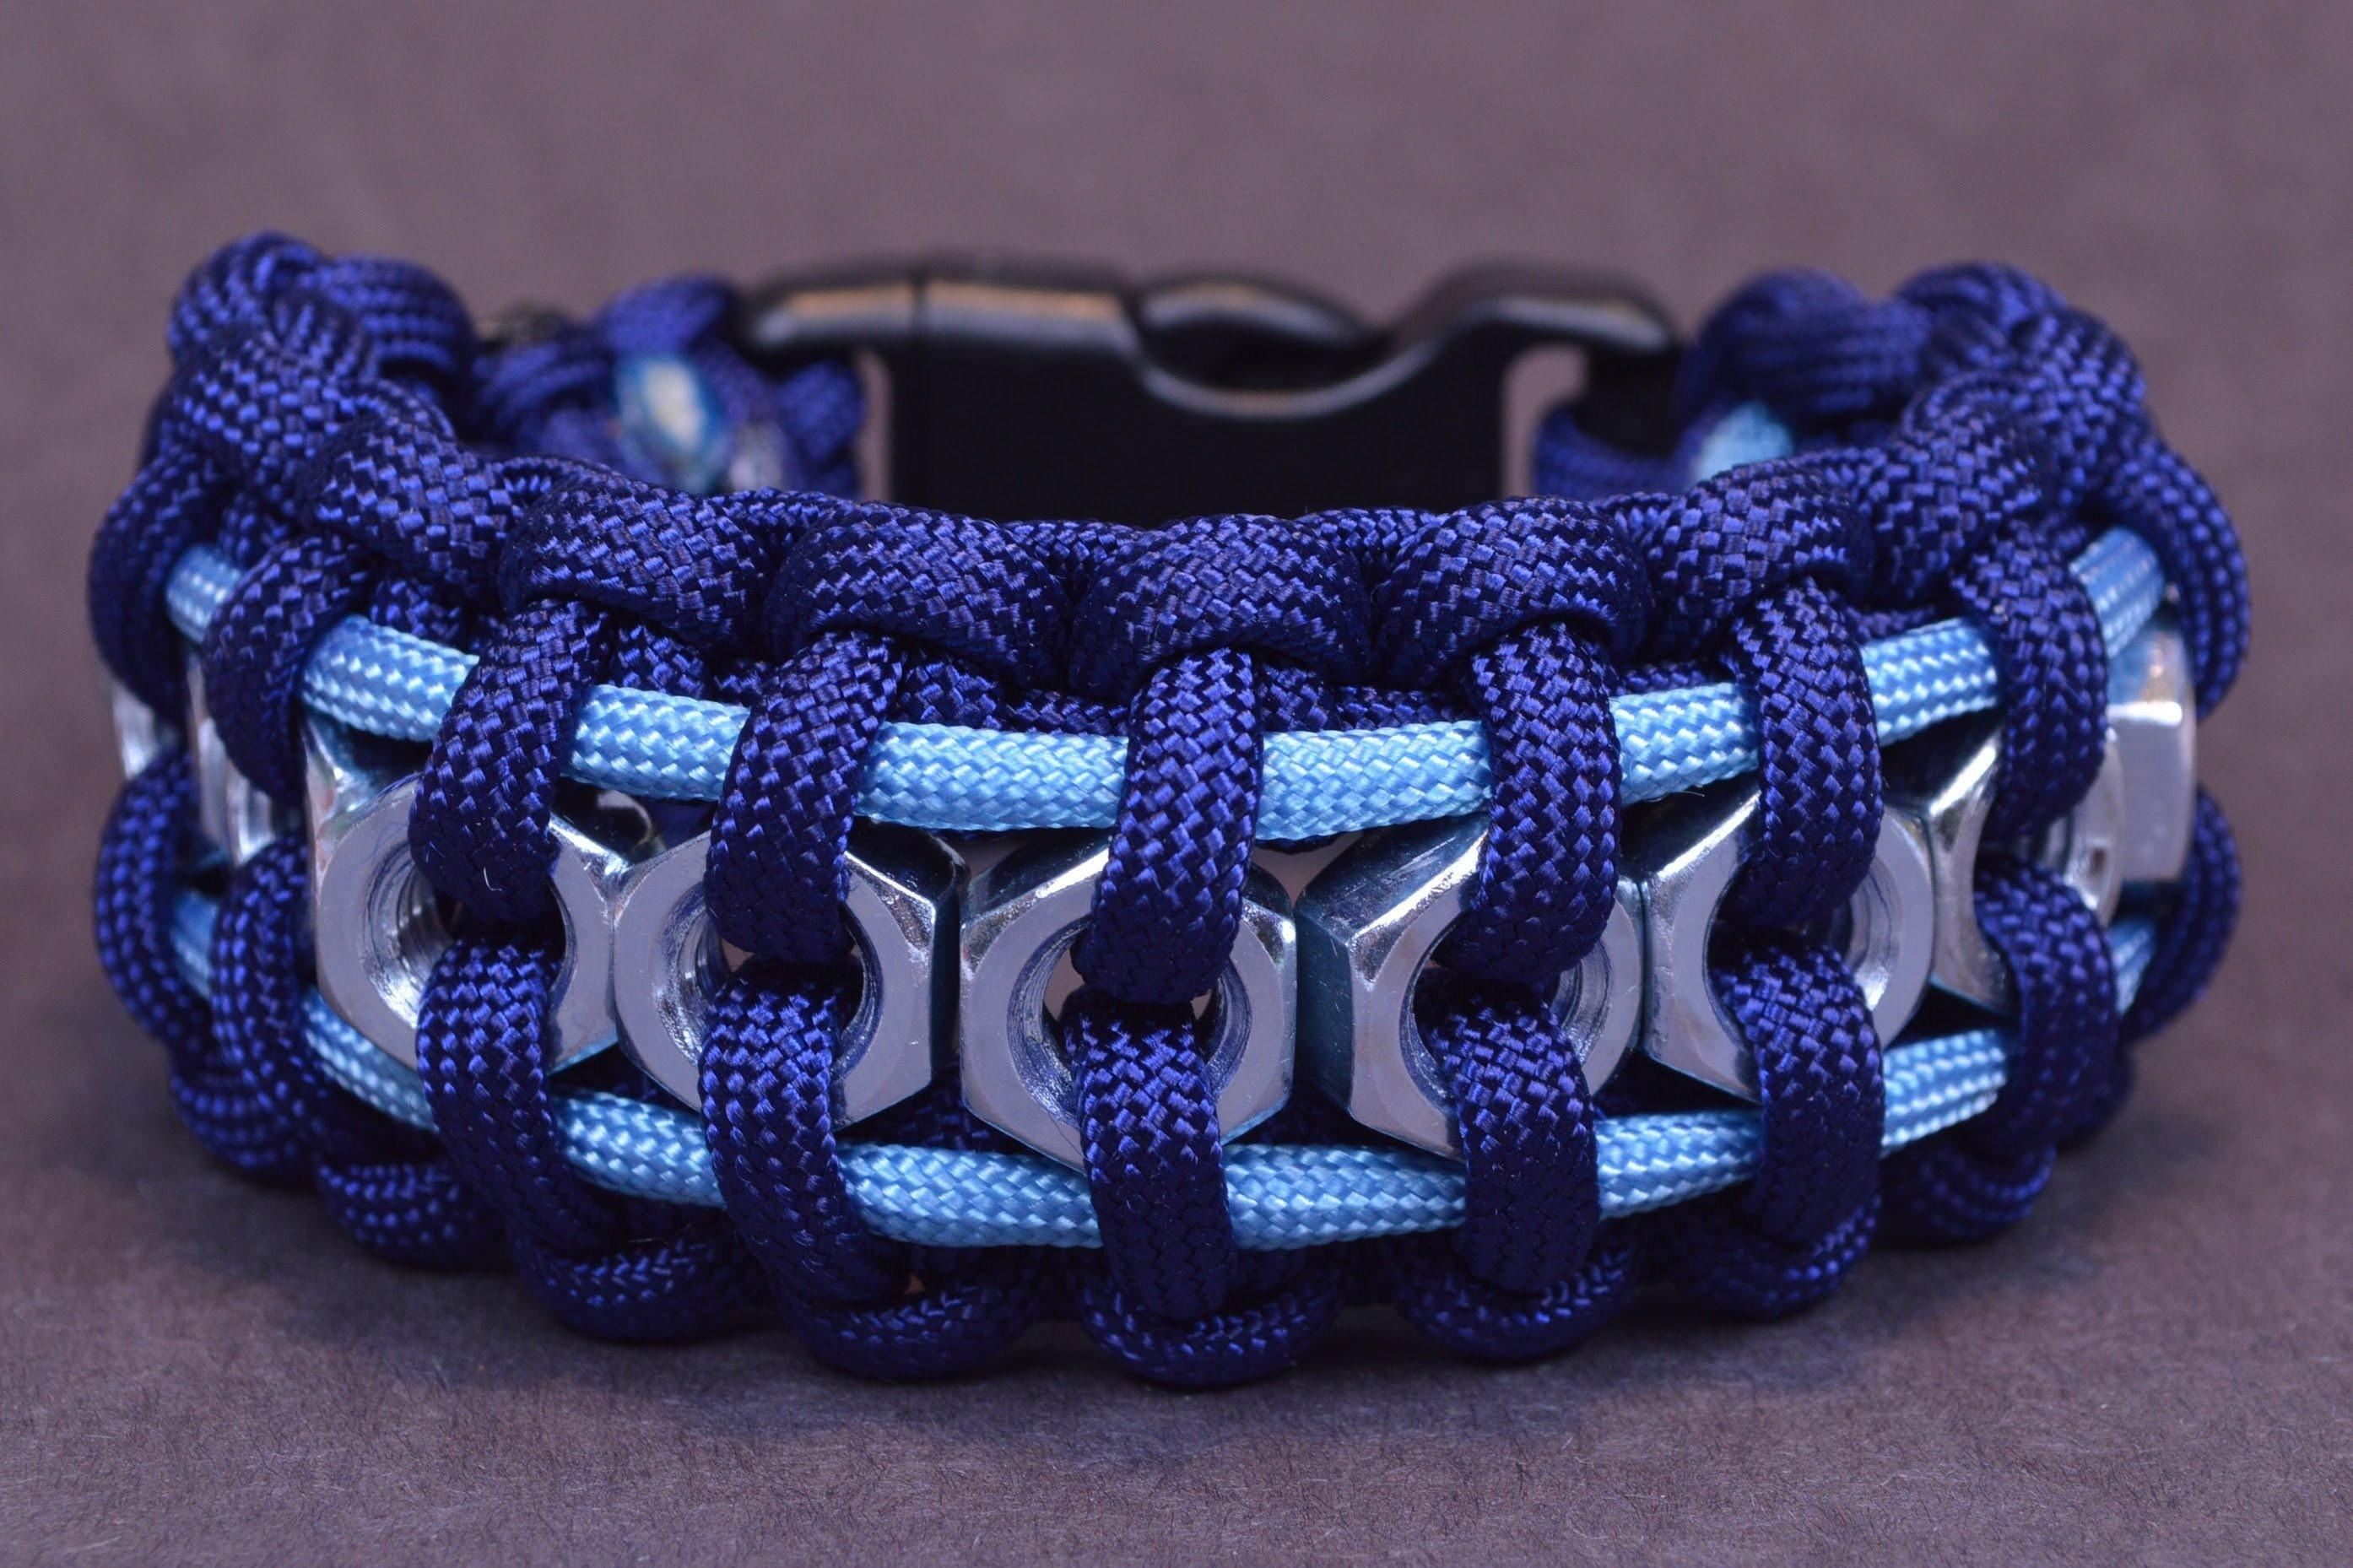 Hex Nut Paracord Bracelet Learn Make Your Own